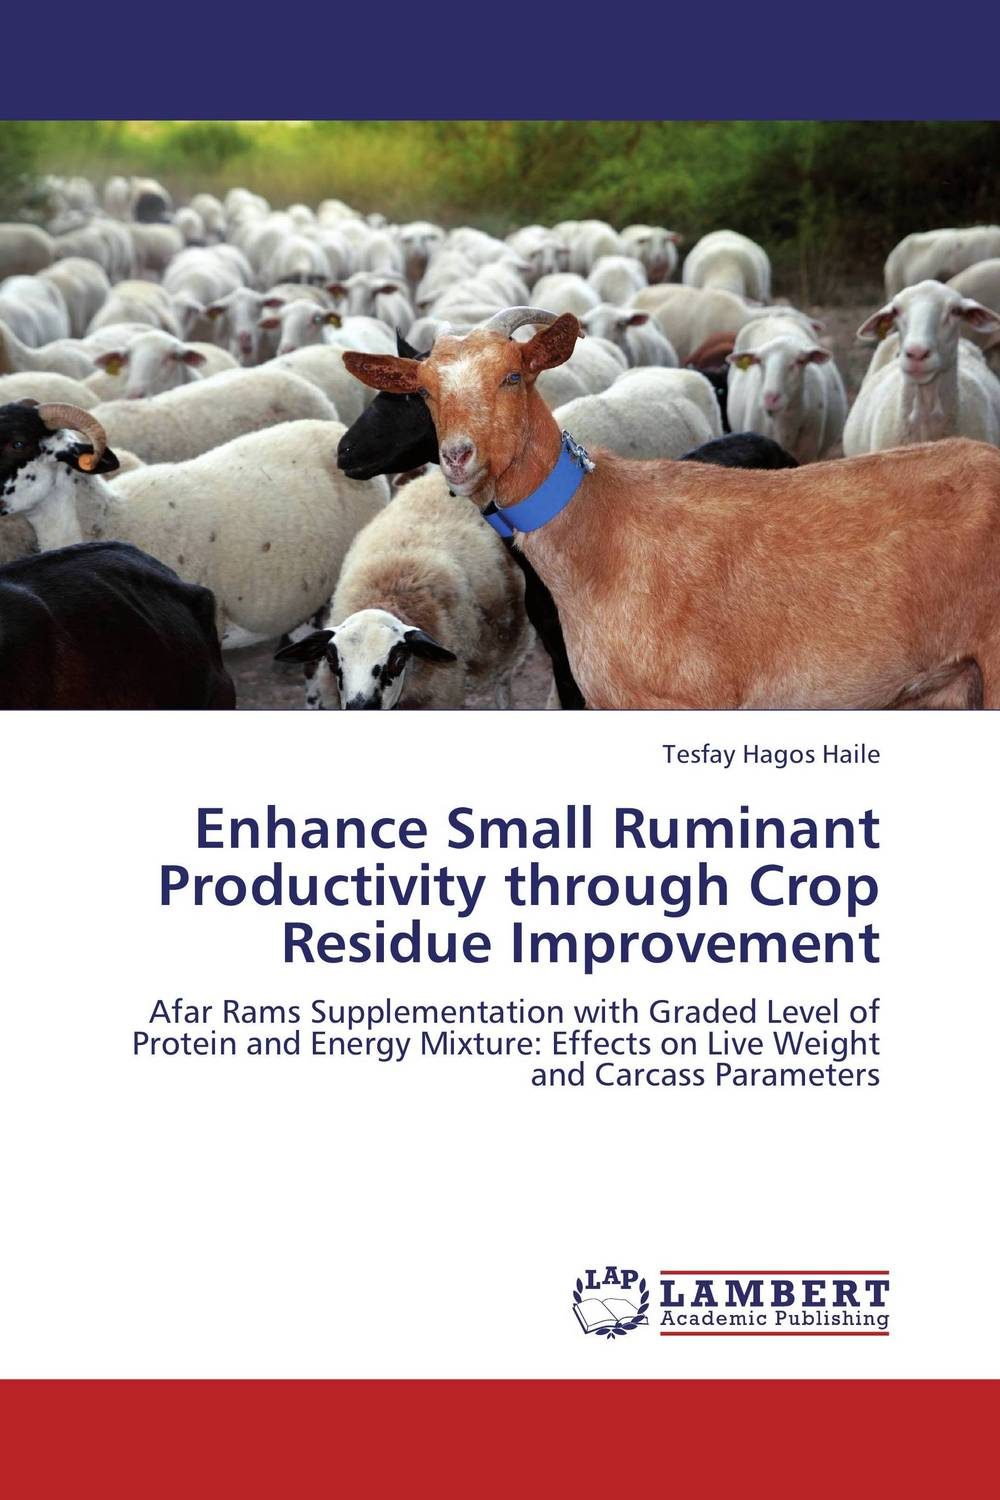 Enhance Small Ruminant Productivity through Crop Residue Improvement amare matebu daniel kitaw and carlo rafele productivity improvement in ethiopian manufacturing firms